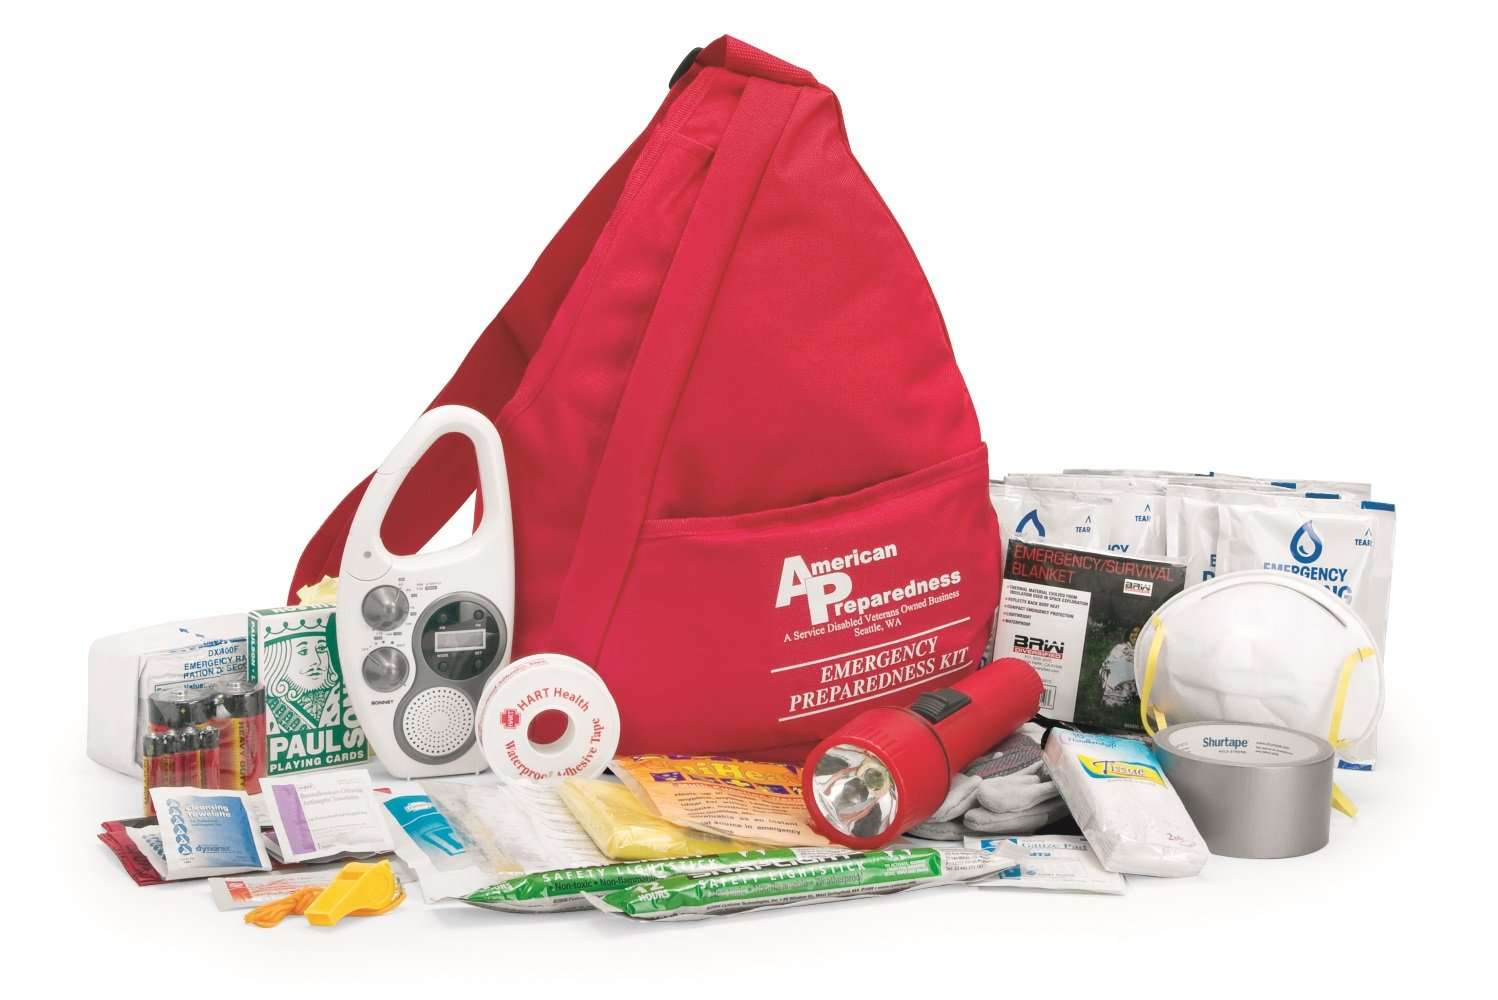 American Preparedness SLING-21 64-Piece One Person Basic Emergency Preparedness Kit with Shoulder Bag